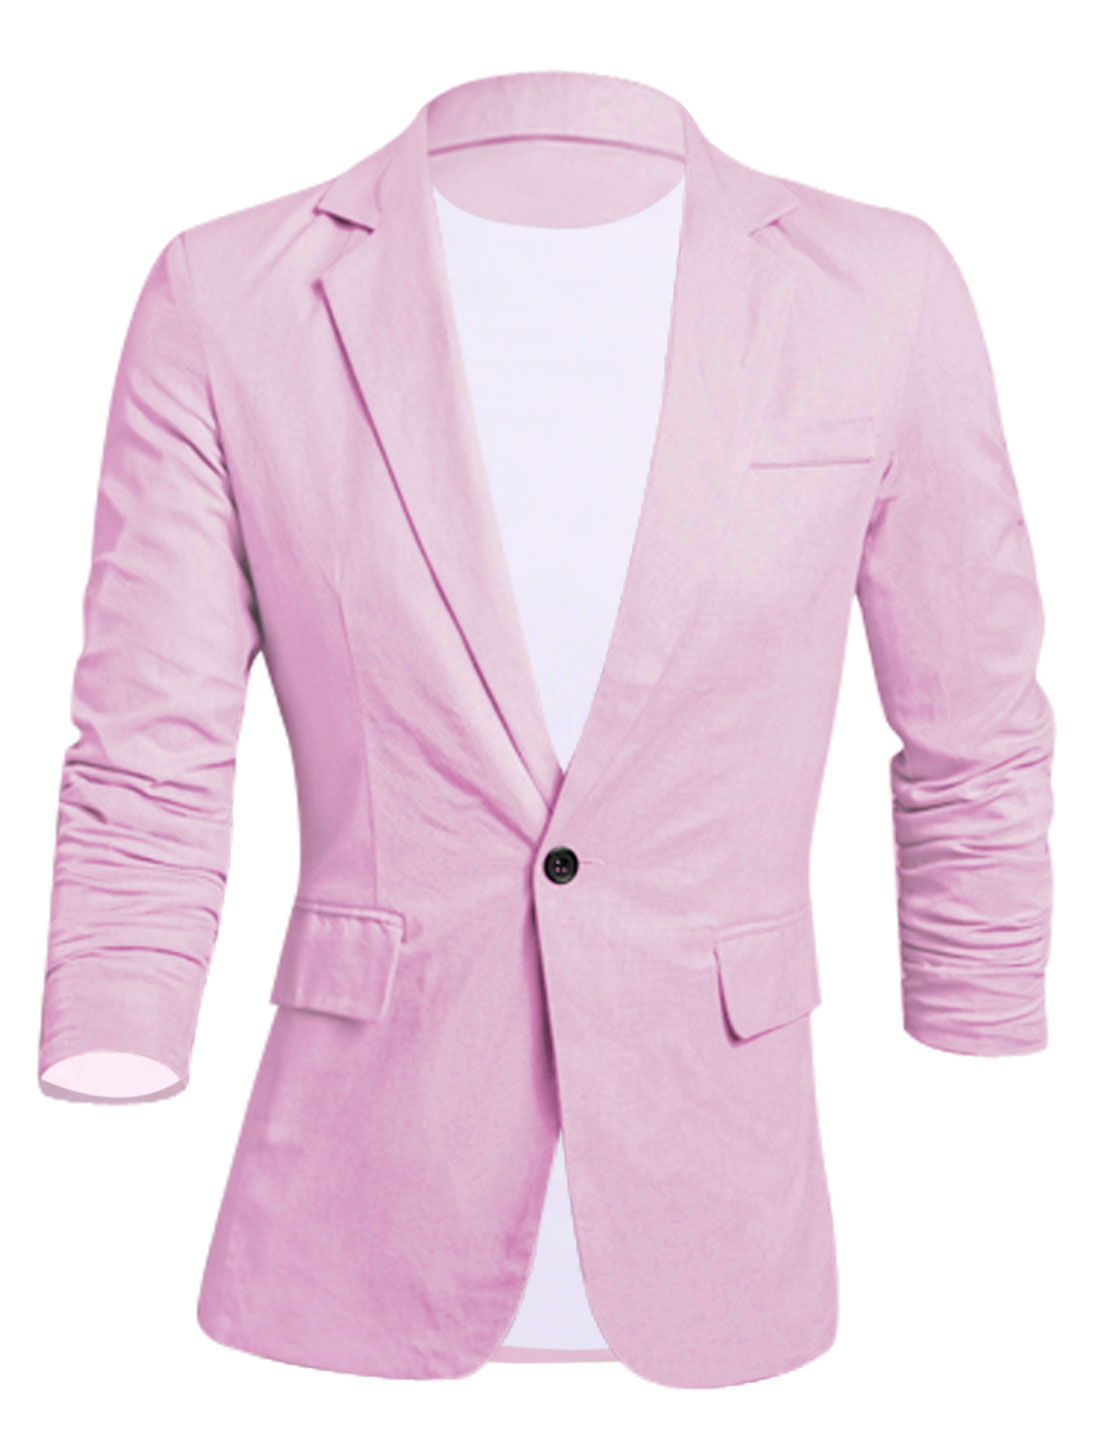 Men Notched Lapel Full Lined Long Sleeves Slim Cut Linen Blazer Pink M